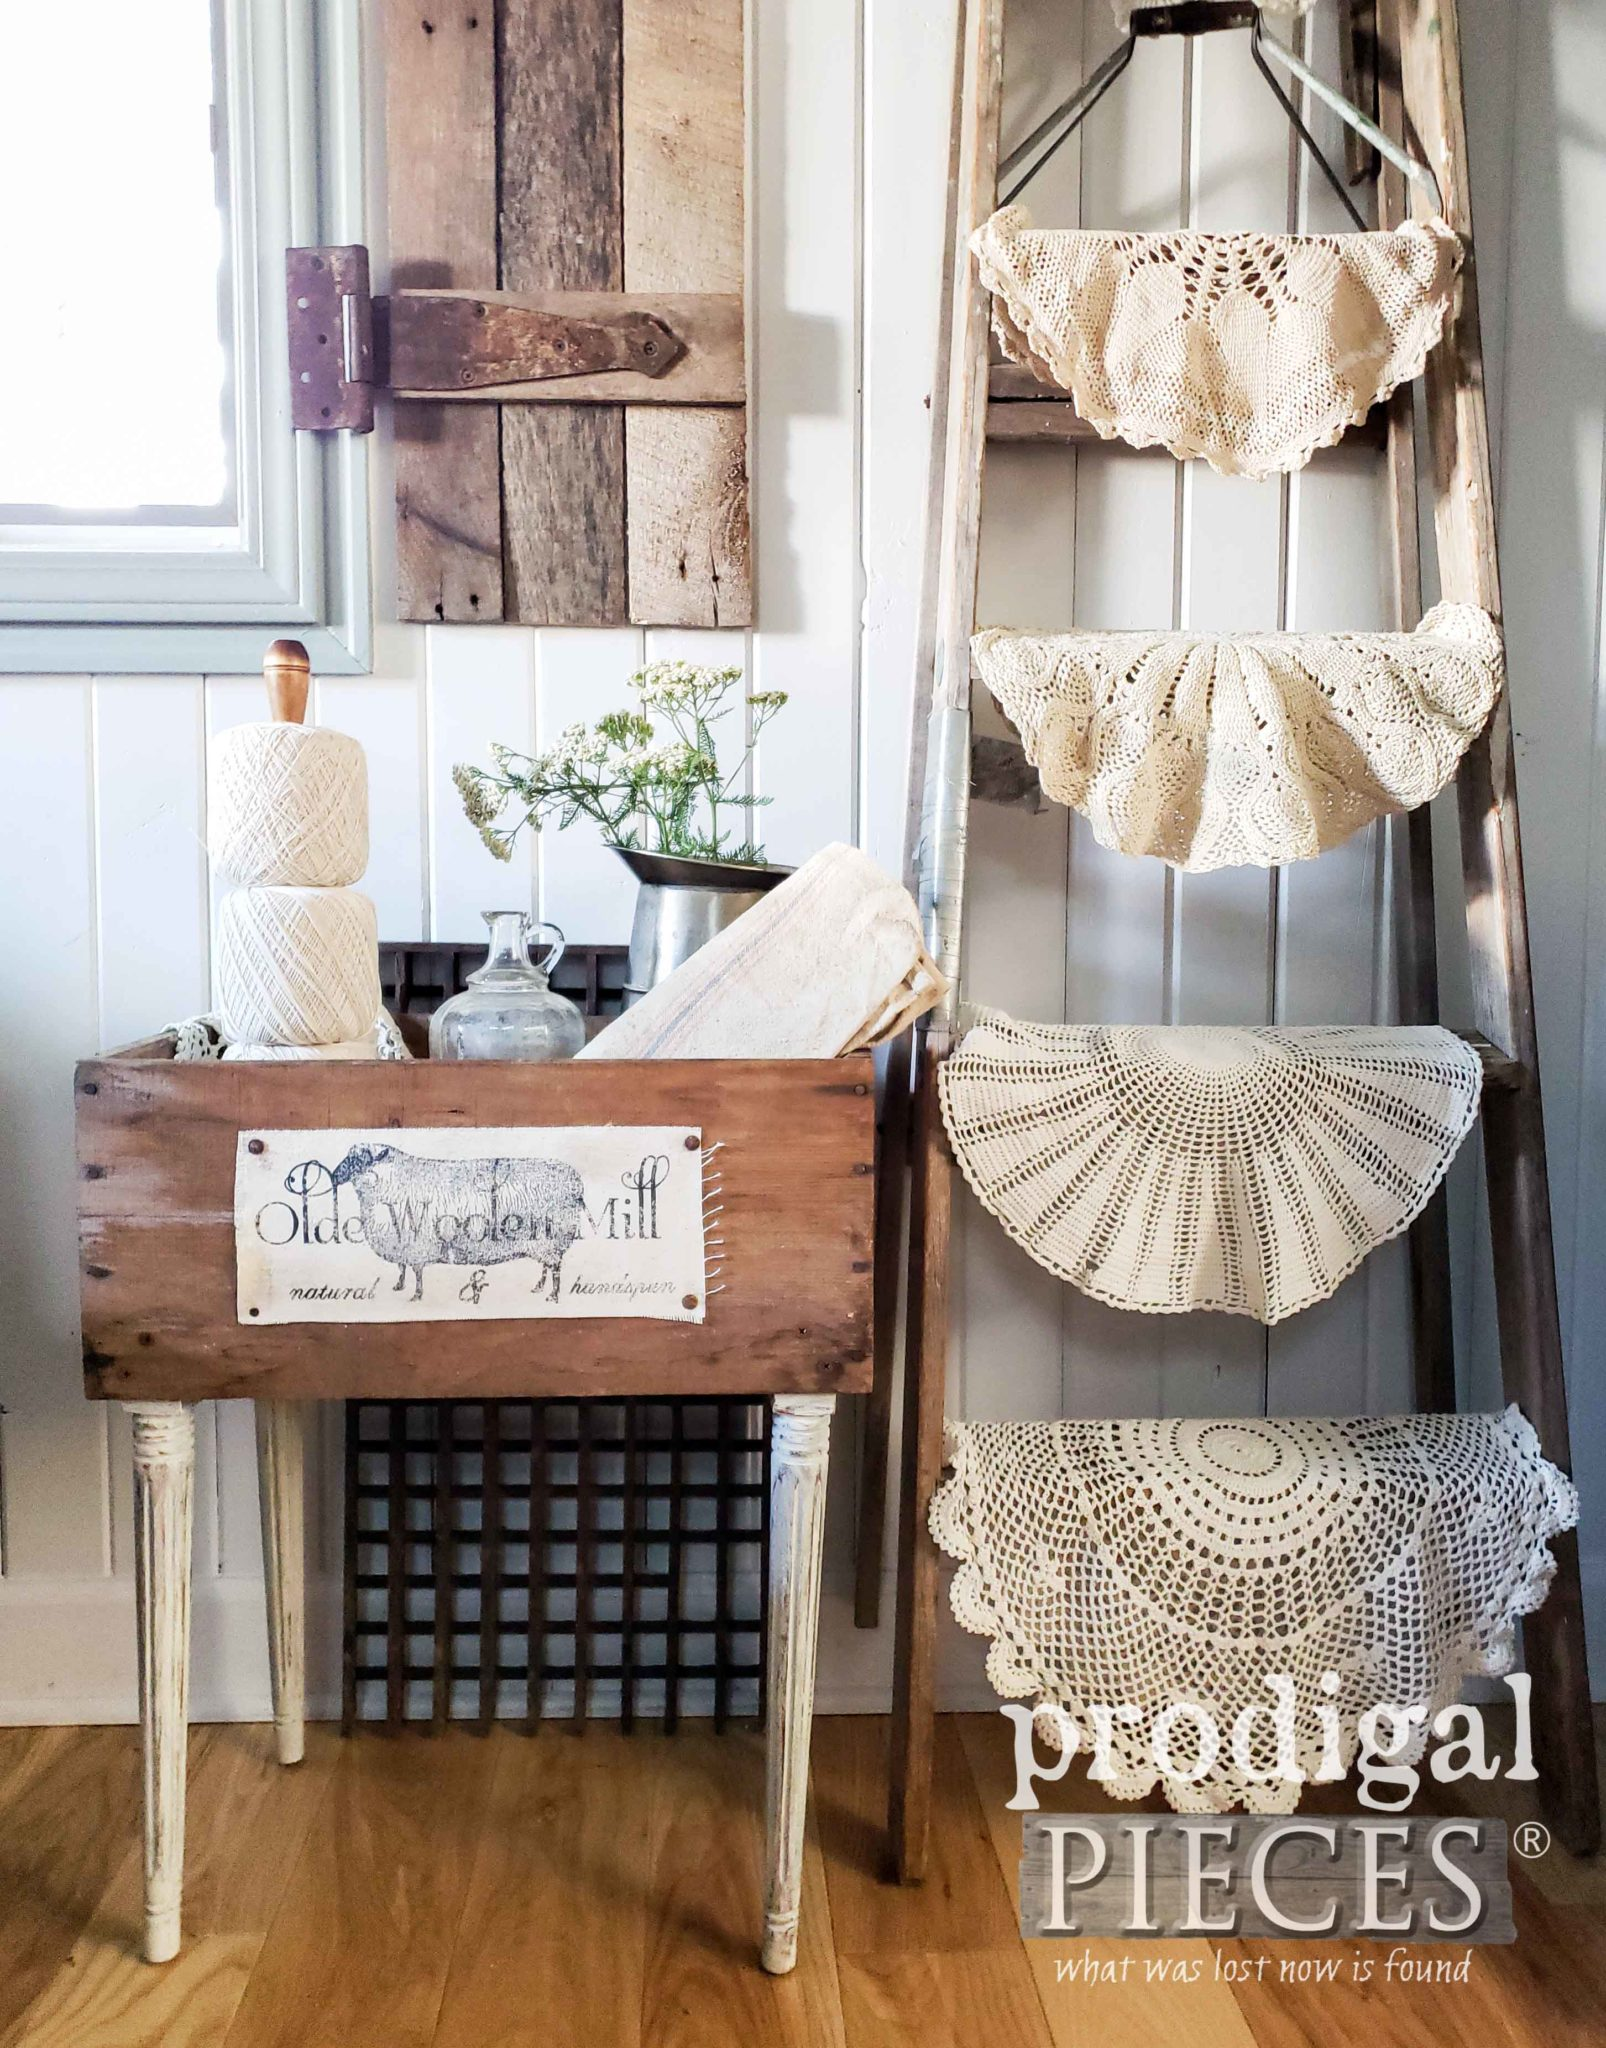 Rustic Farmhouse Crate Table Made from Upcycled Parts by Larissa of Prodigal Pieces | prodigalpieces.com #prodigalpieces #farmhouse #furniture #home #homedecor